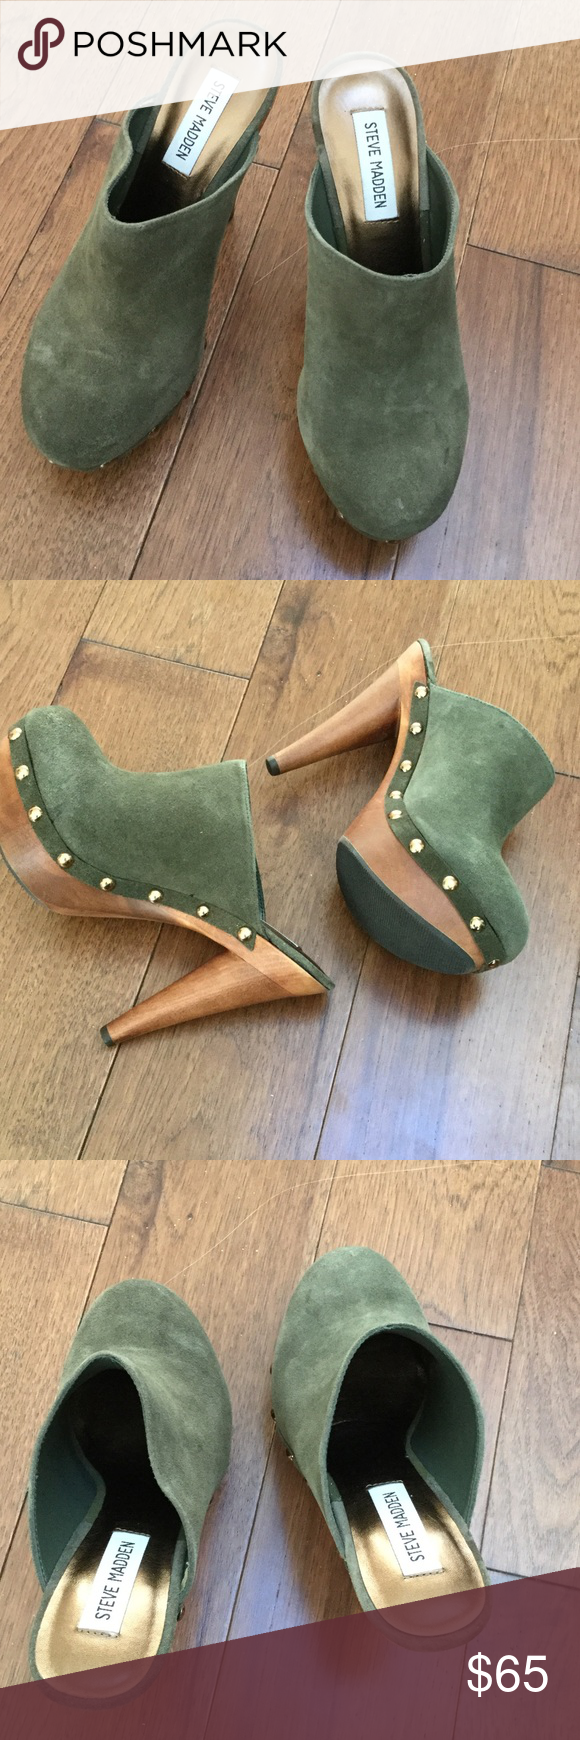 """STEVE MADDEN DISCCO OLIVE SUEDE CLOGS STEVE MADDEN DISCCO OLIVE SUEDE WOOD CLOG HEELS. WOOD PLATFORM WITH BRASS NAILHEADS. HEELS 5""""   Never WORN. Steve Madden Shoes Mules & Clogs"""